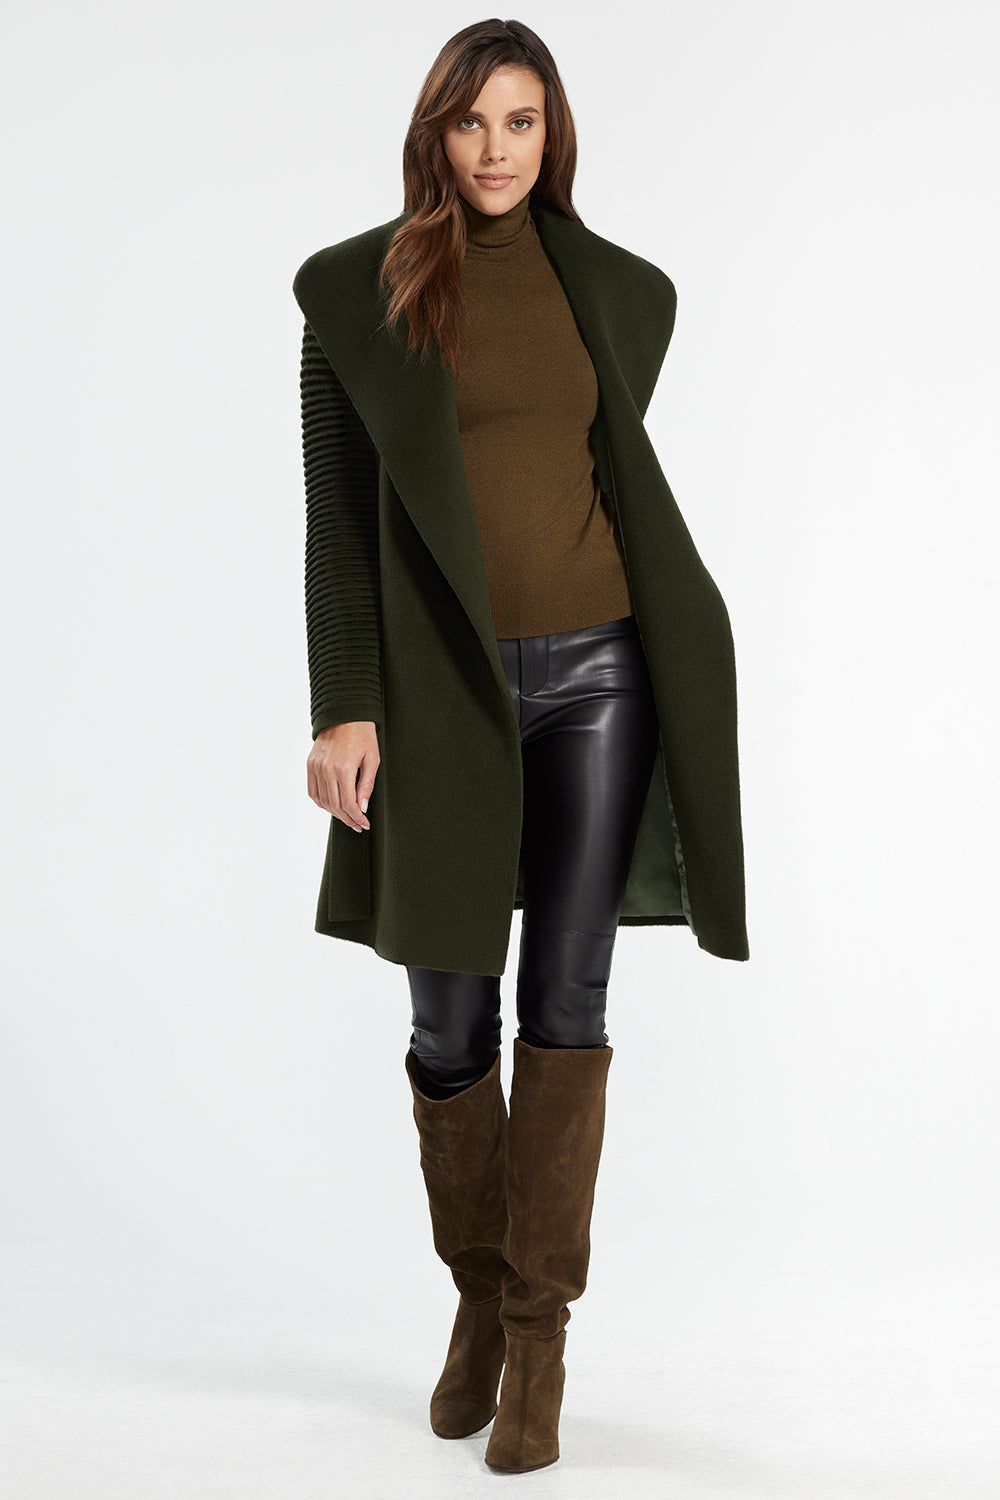 Sentaler Mid Length Shawl Collar Wrap Coat with Ribbed Sleeves featured in Baby Alpaca and available in Olive. Seen from open.